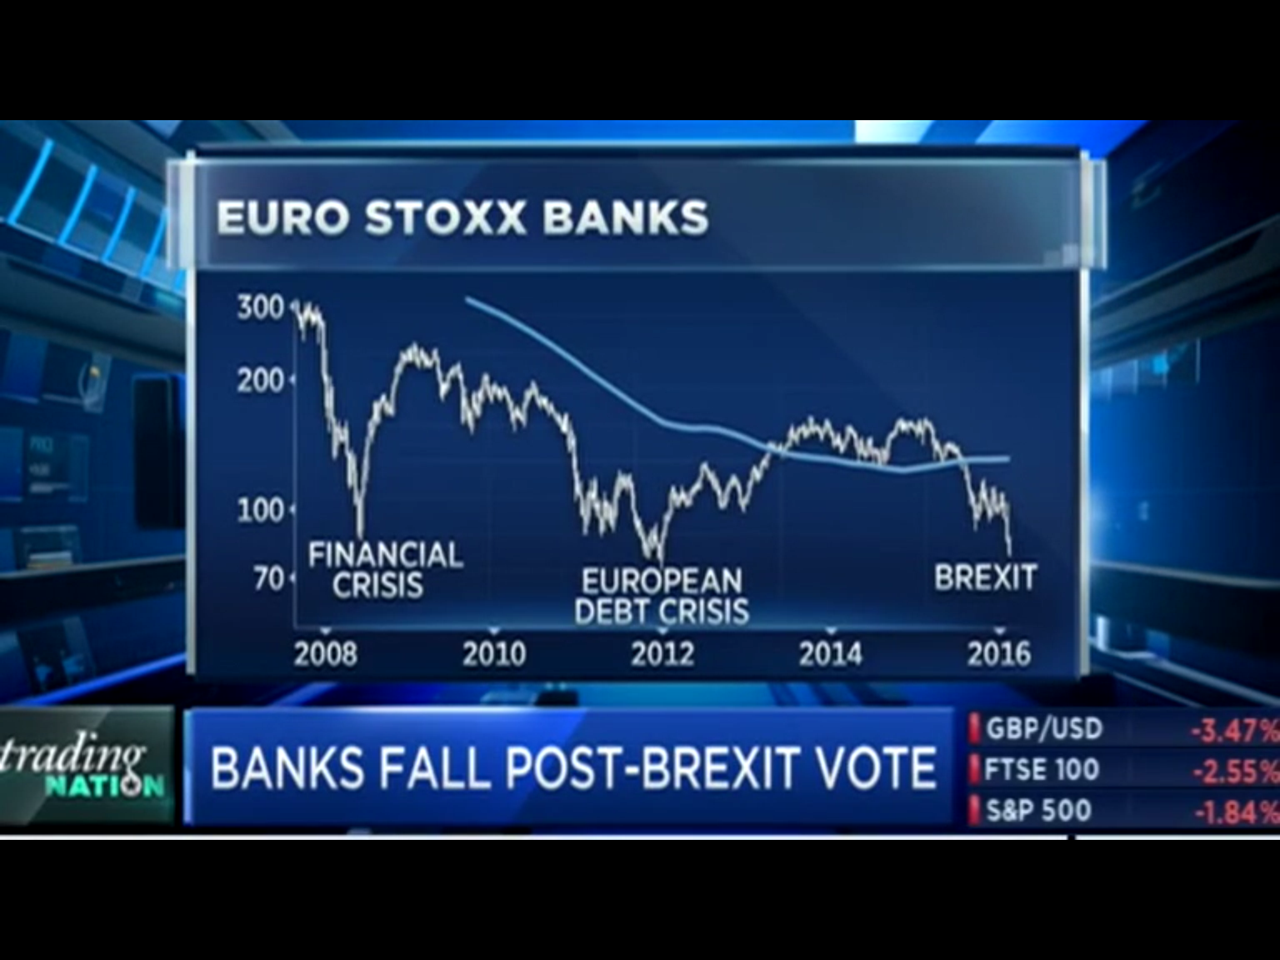 euro-stoxx-banks-brexit-bottom-or-beginning